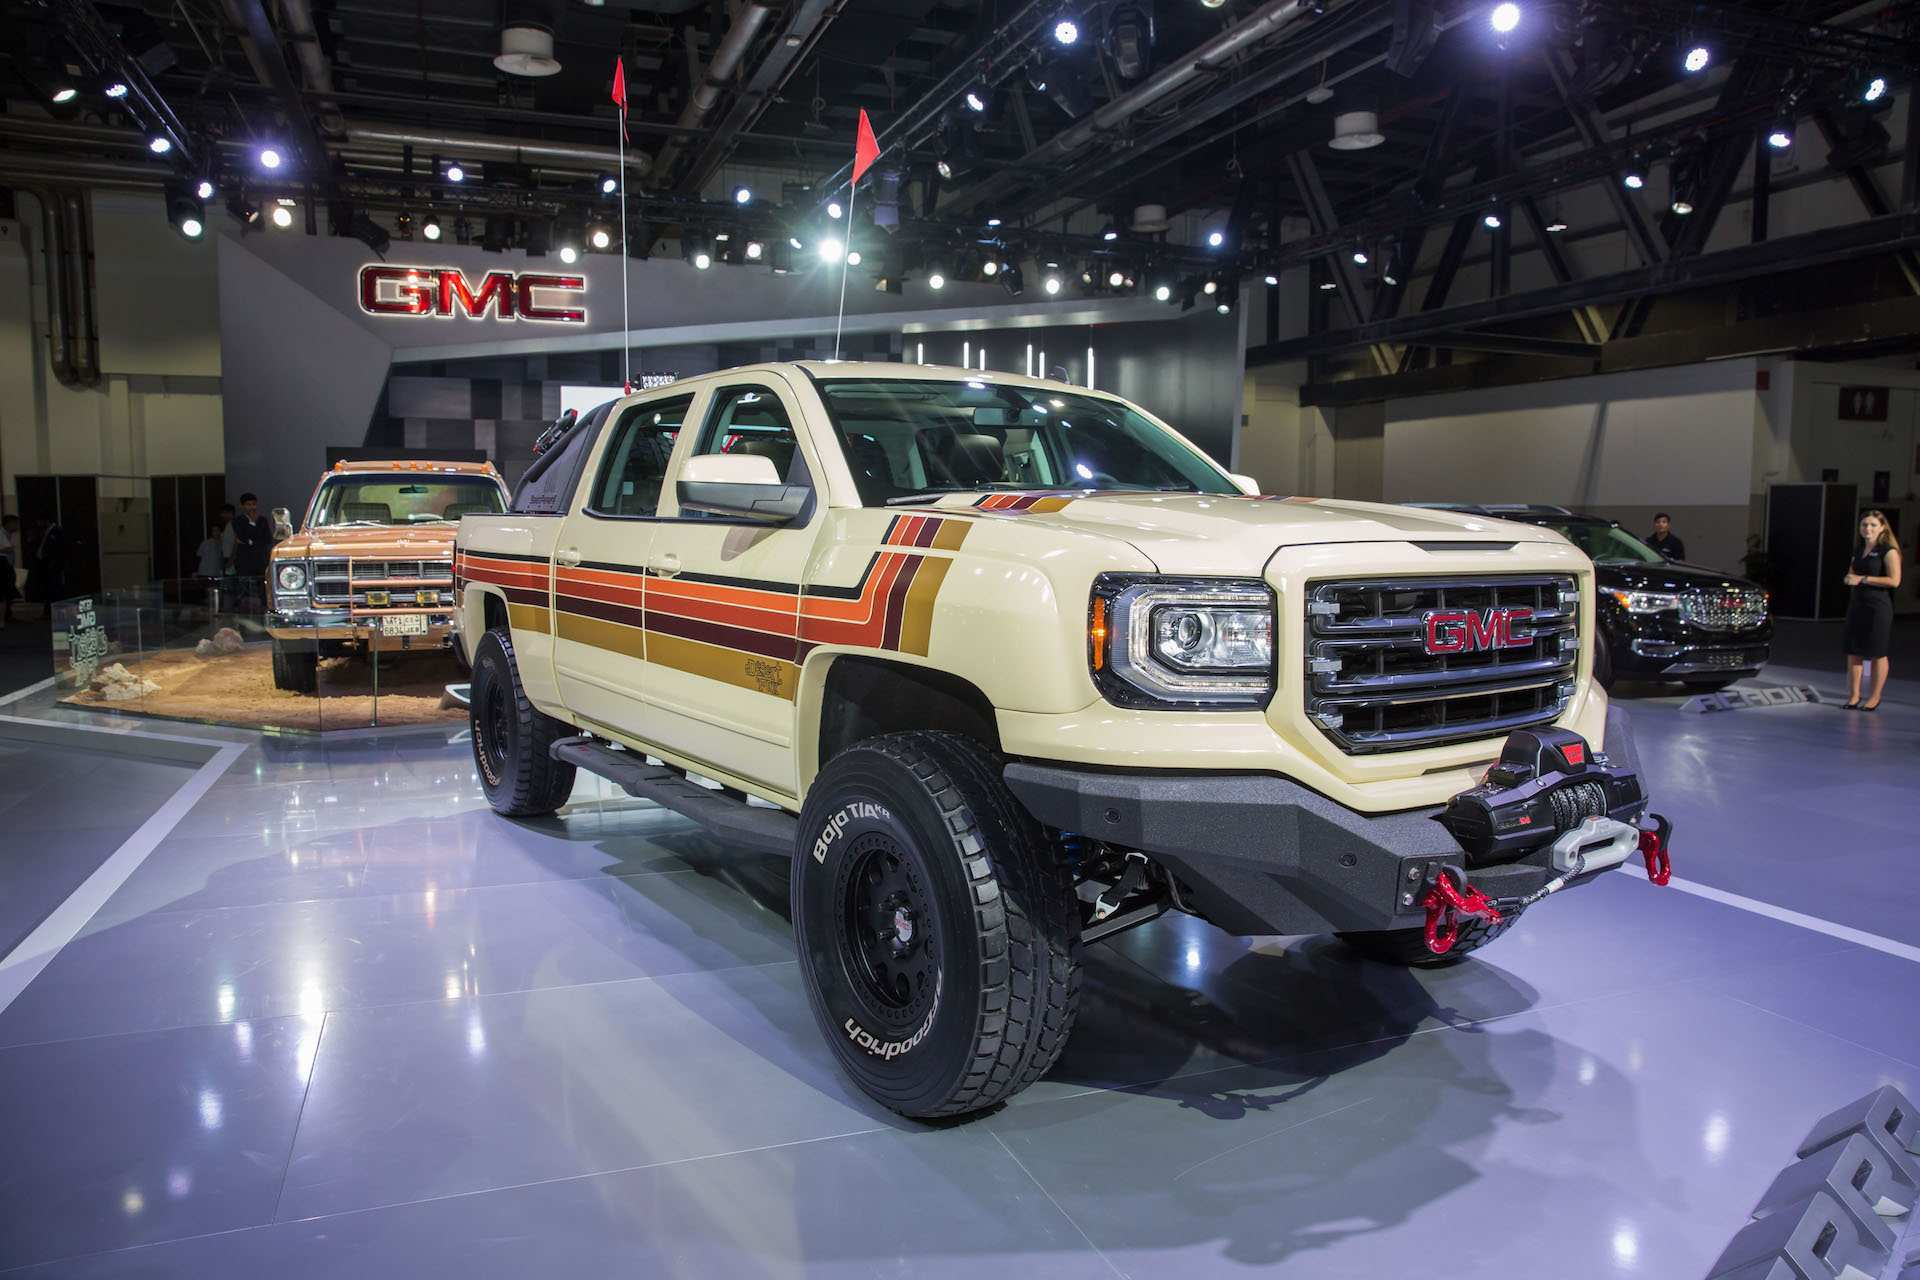 94 Gallery of 2019 Gmc Concept Picture with 2019 Gmc Concept